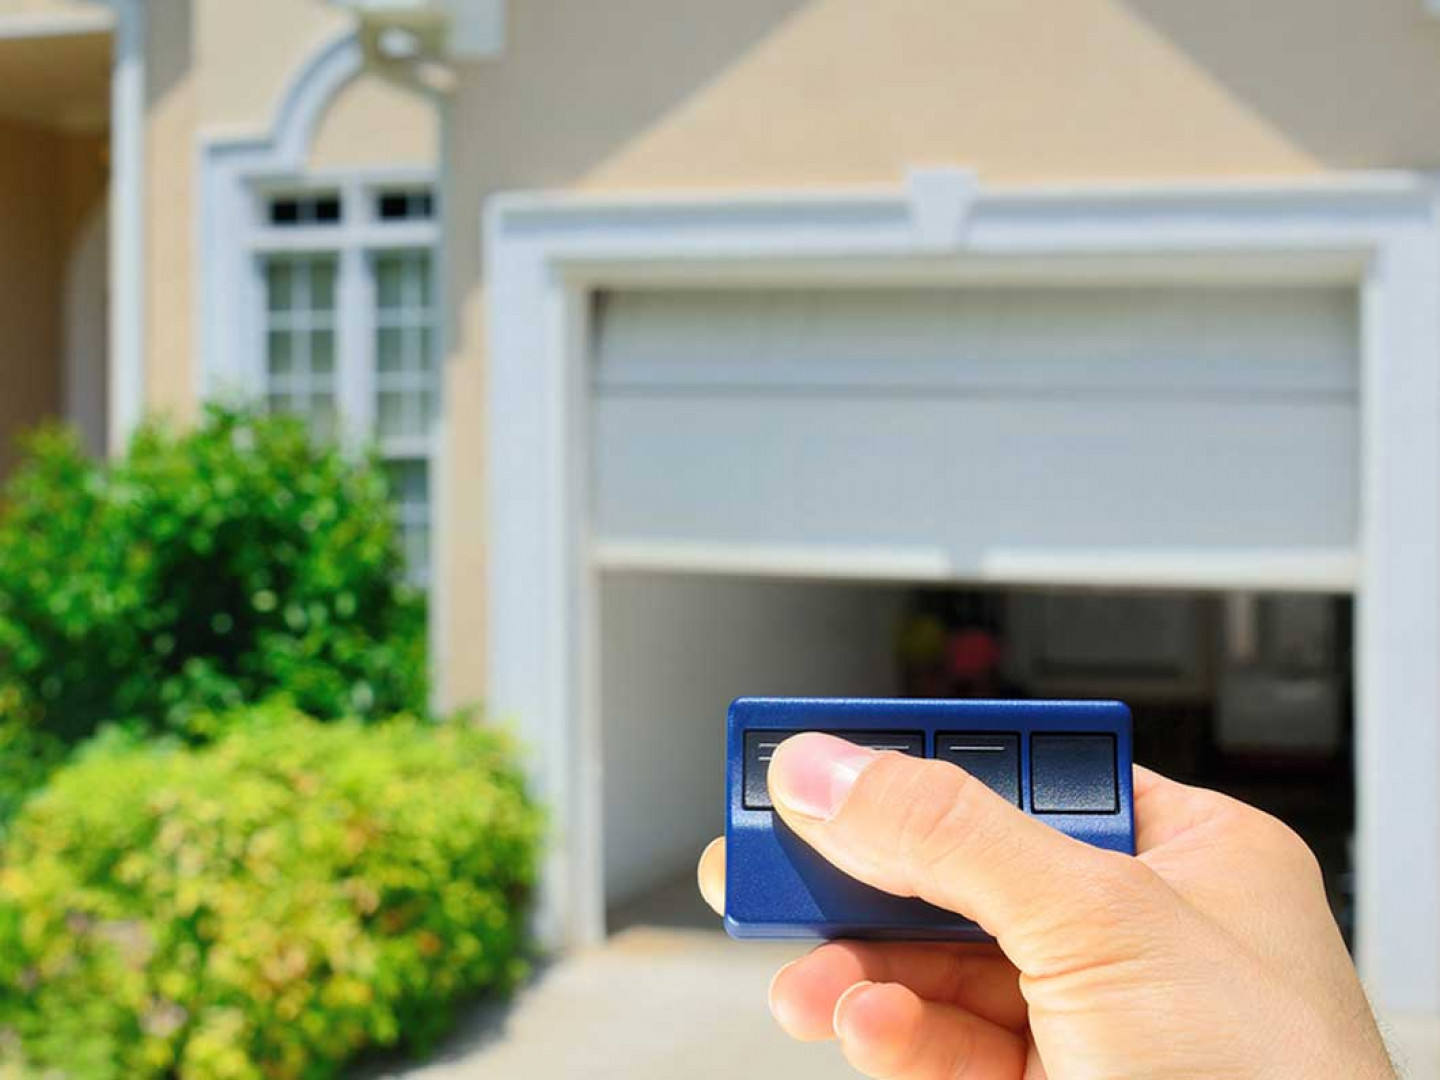 Control your garage door from anywhere, at any time